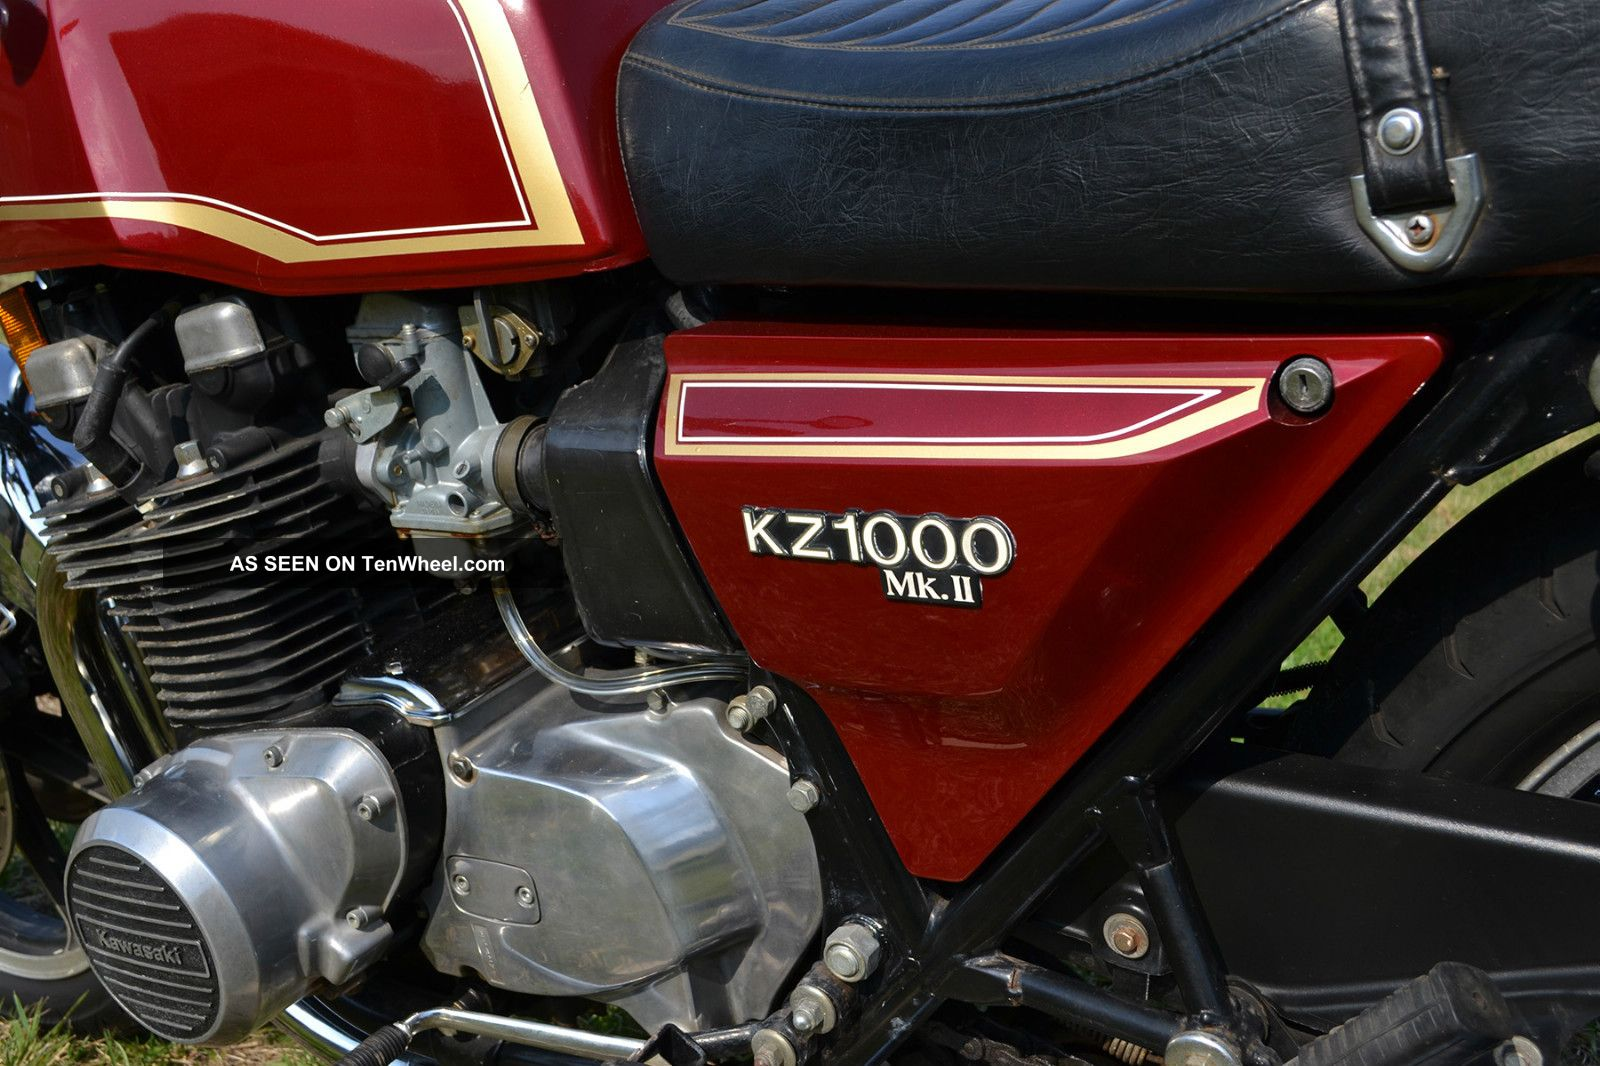 1979 kawasaki kz1000 mkii 5 lgw together with 2013 09 04 161917 2003 dyna  security dia